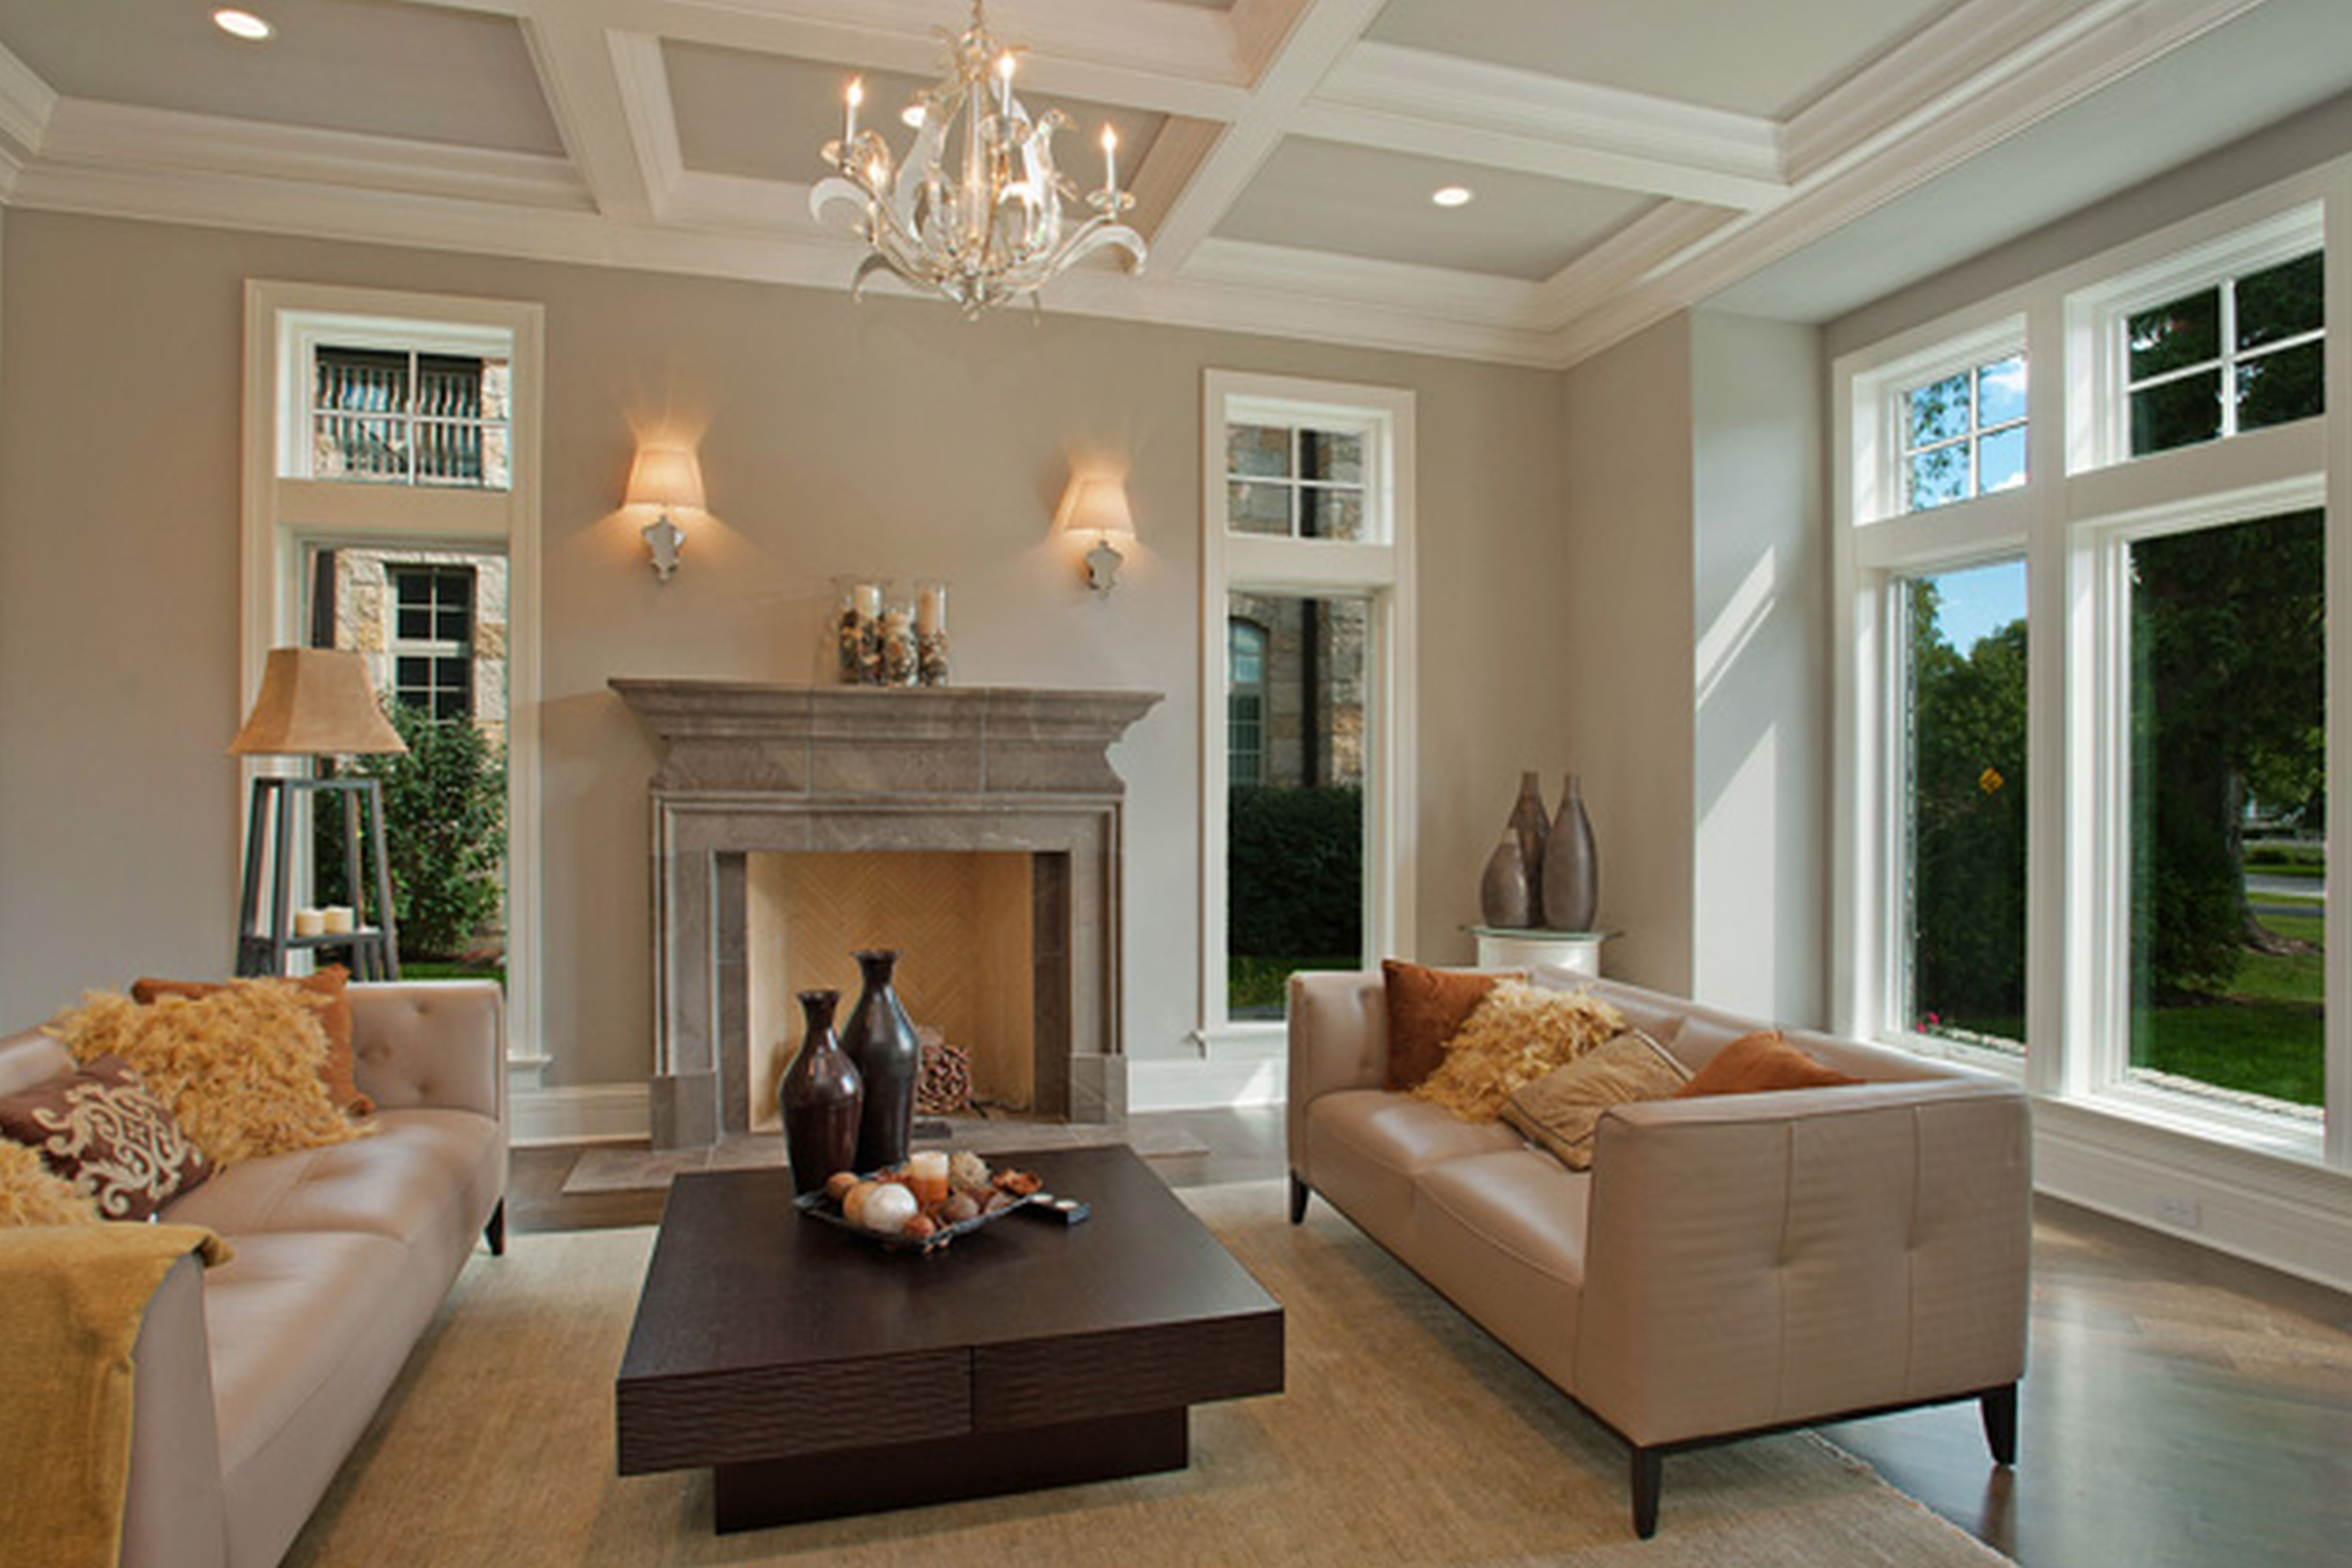 awesome Fireplace Mantel kits between glass windows with modern sofa and wooden floor plus chandelier for inspiring home decor ideas